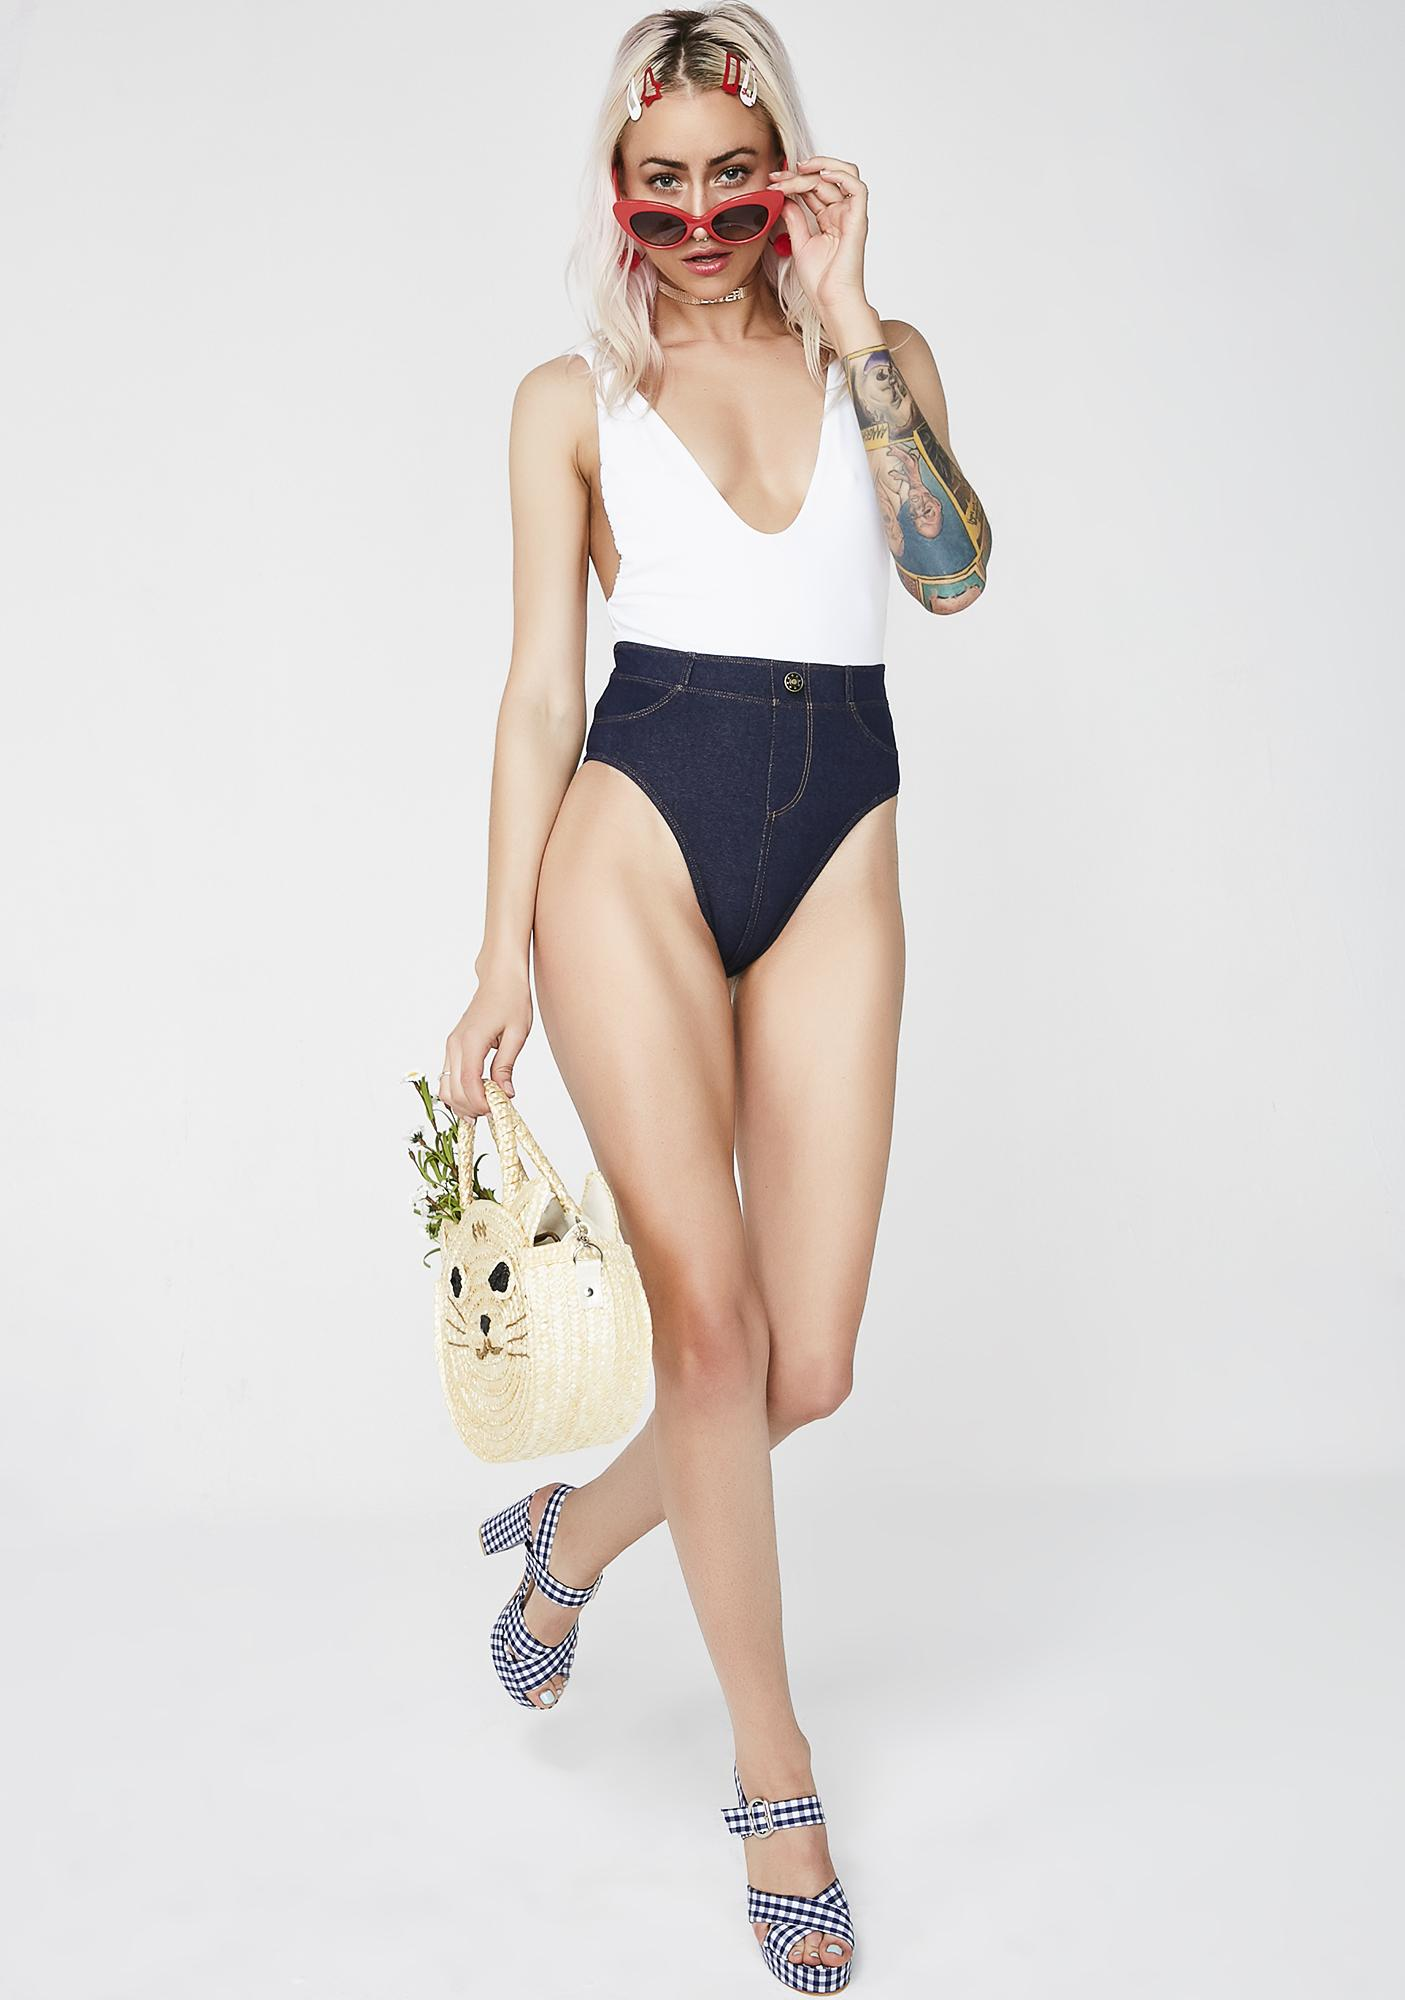 Chloe Rose Swimwear Blue Jean Baby One Piece